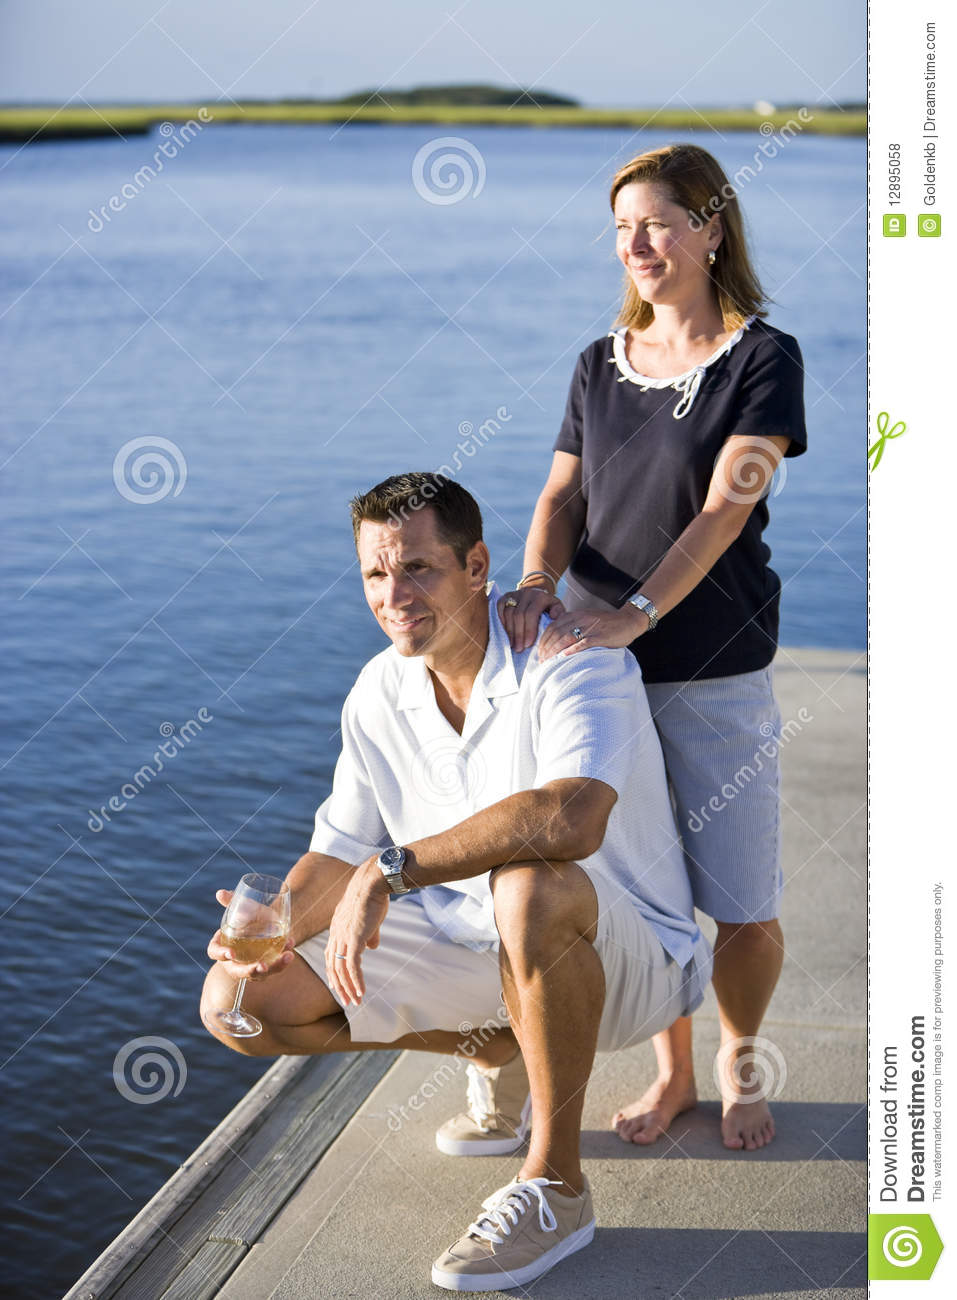 Couple Relaxing With Drink On Dock By Water Royalty Free Stock Photos ...